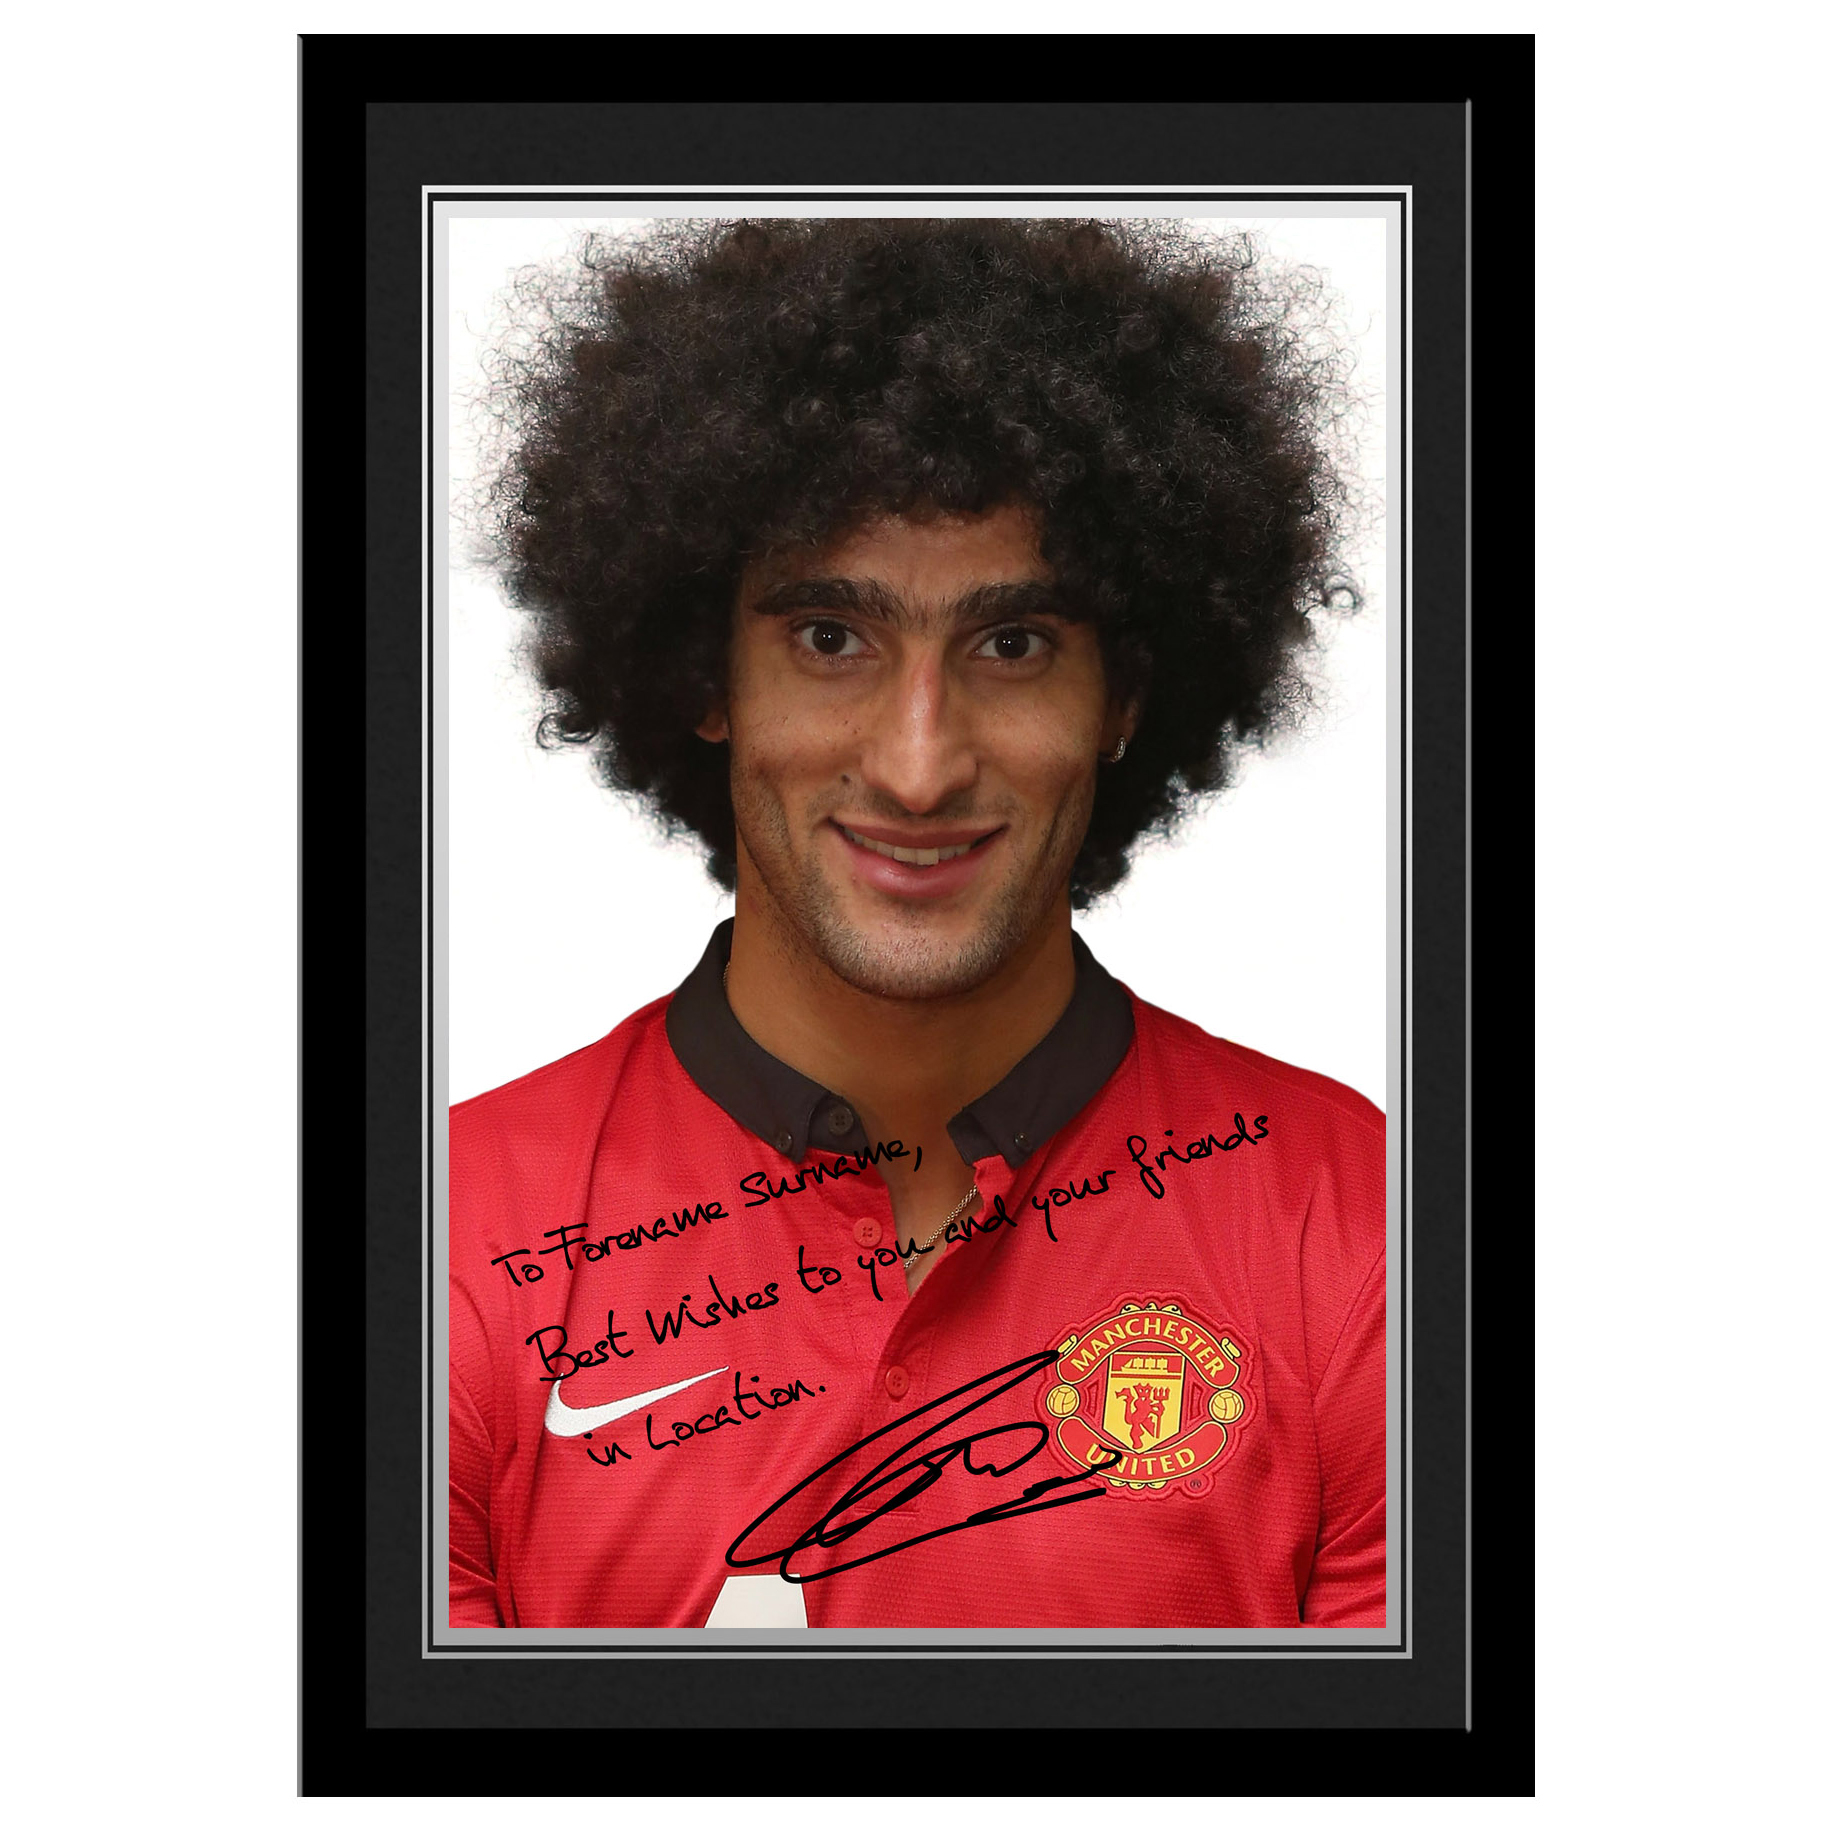 Manchester United Personalised Signature Photo Framed - Fellaini